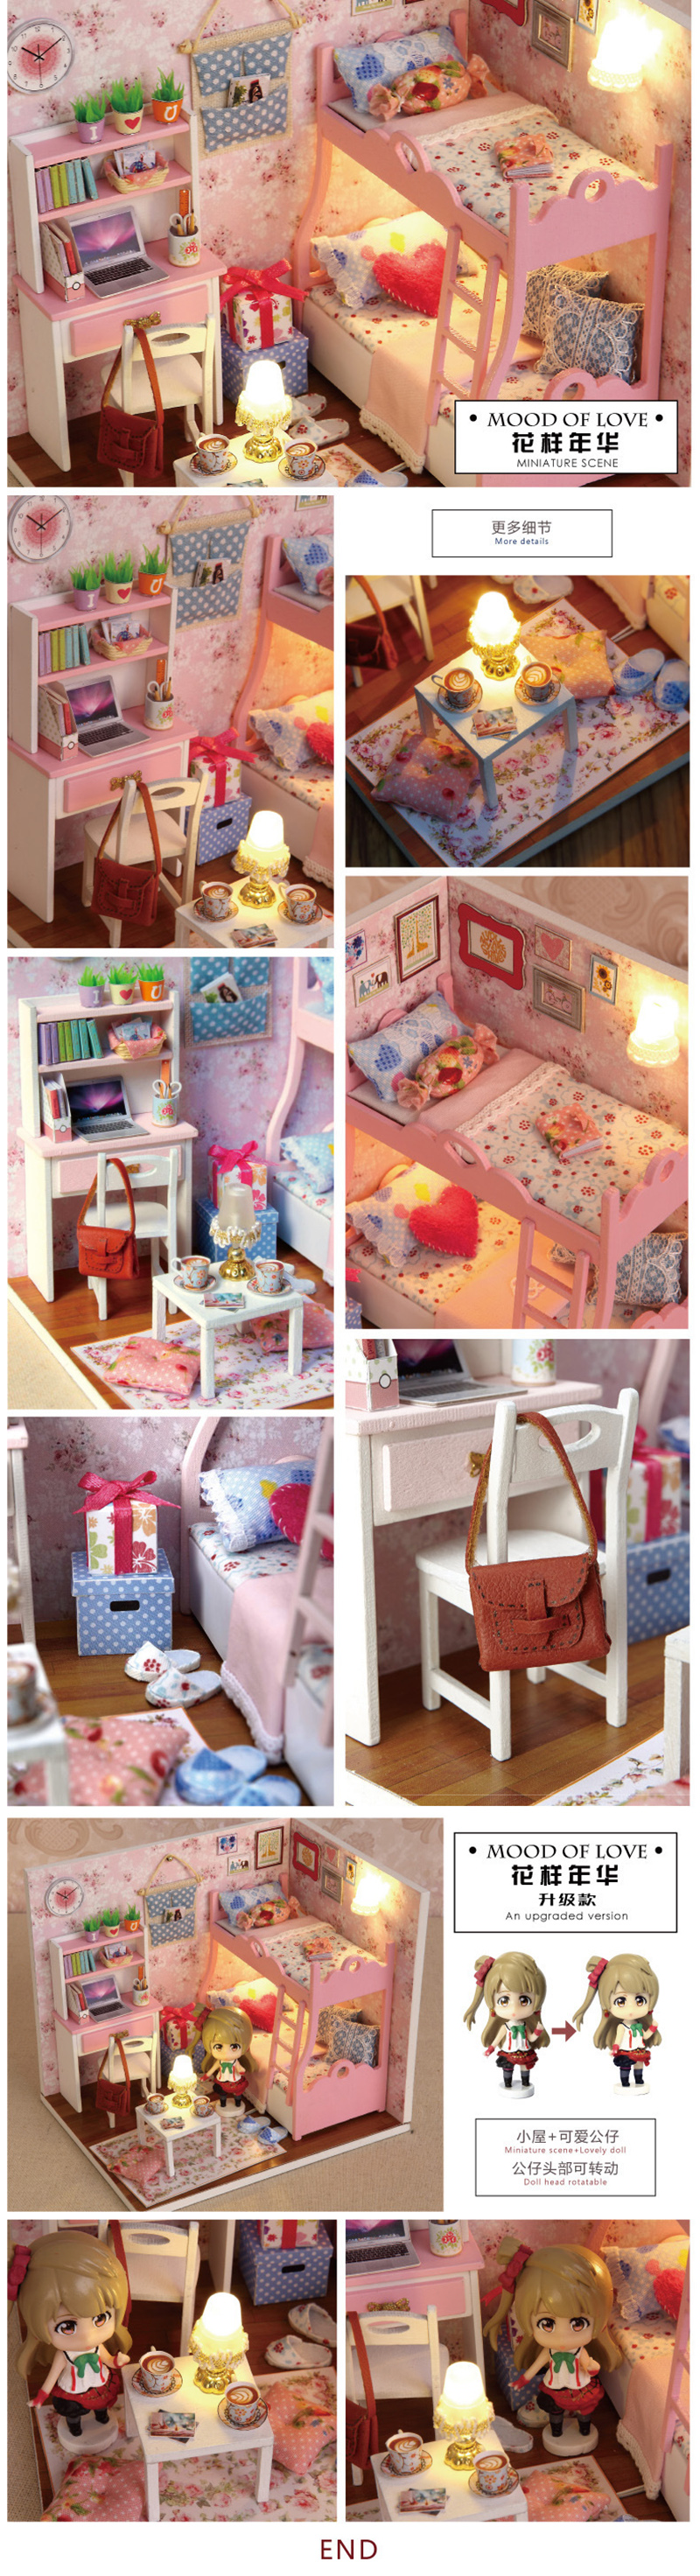 Diy doll house pattern time girl manual creative model manually building toy for her birthday 10